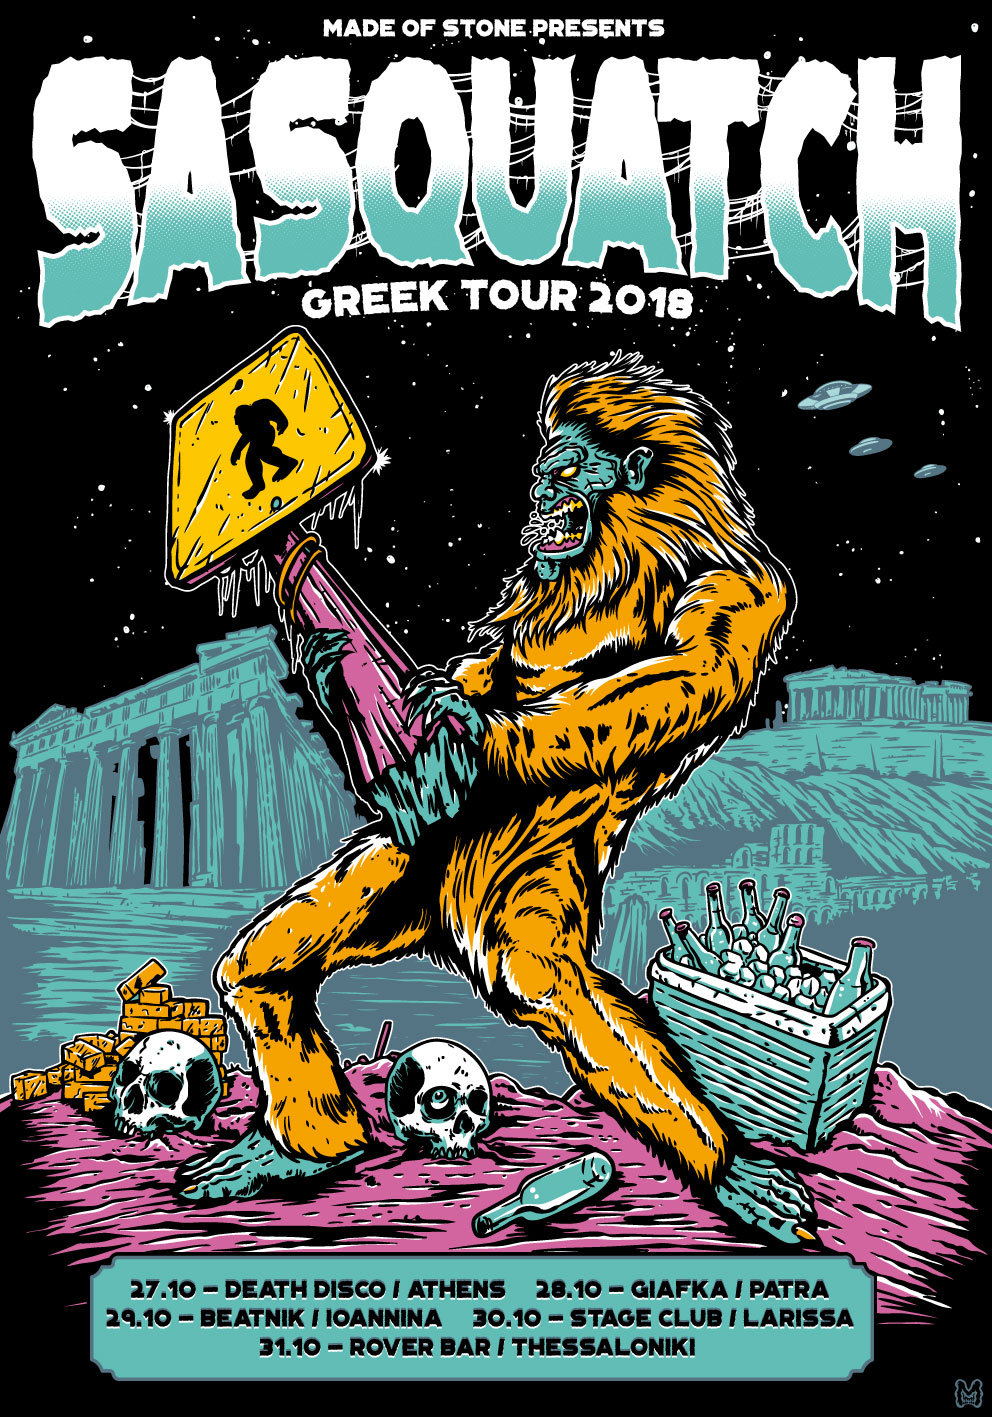 Touring-the-Universe---SASQUATCH_35x50cm-full_tour.jpg